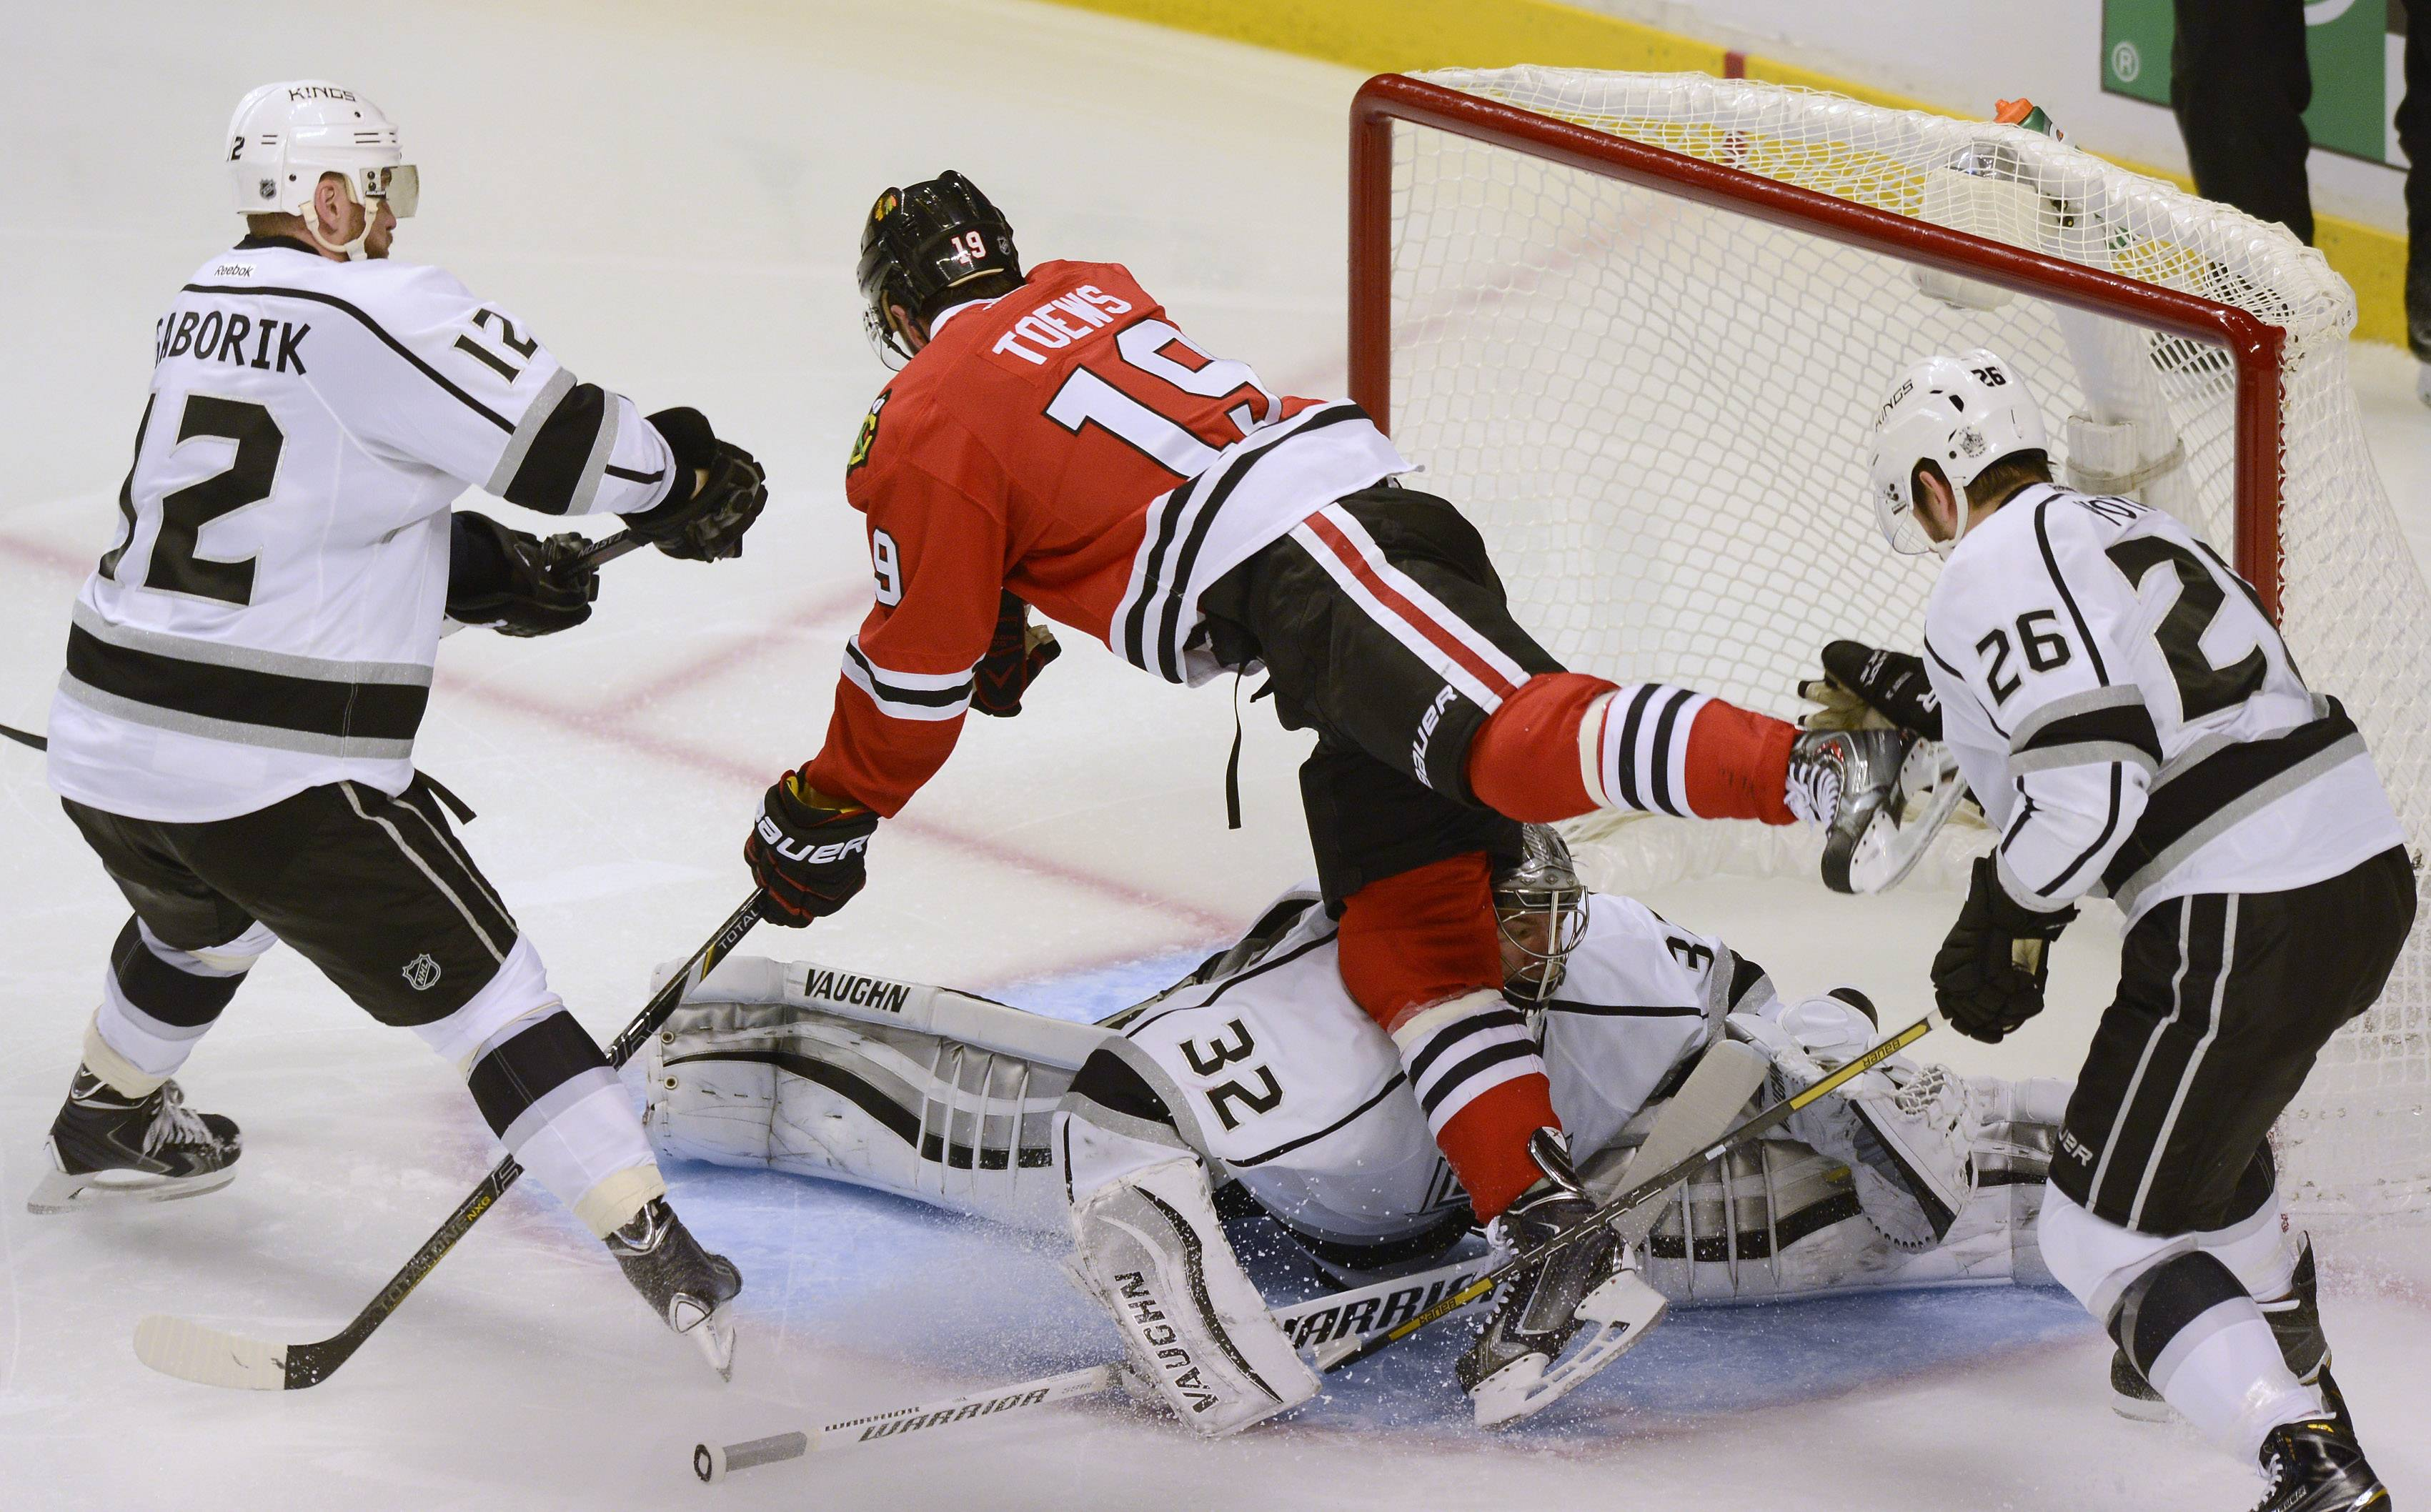 Chicago Blackhawks center Jonathan Toews makes contact with Los Angeles Kings goalie Jonathan Quick on a goal that wound up being disallowed during Sunday's game at the United Center in Chicago. The Kings Marian Gaborik is left and teammate Slava Voynov is right.